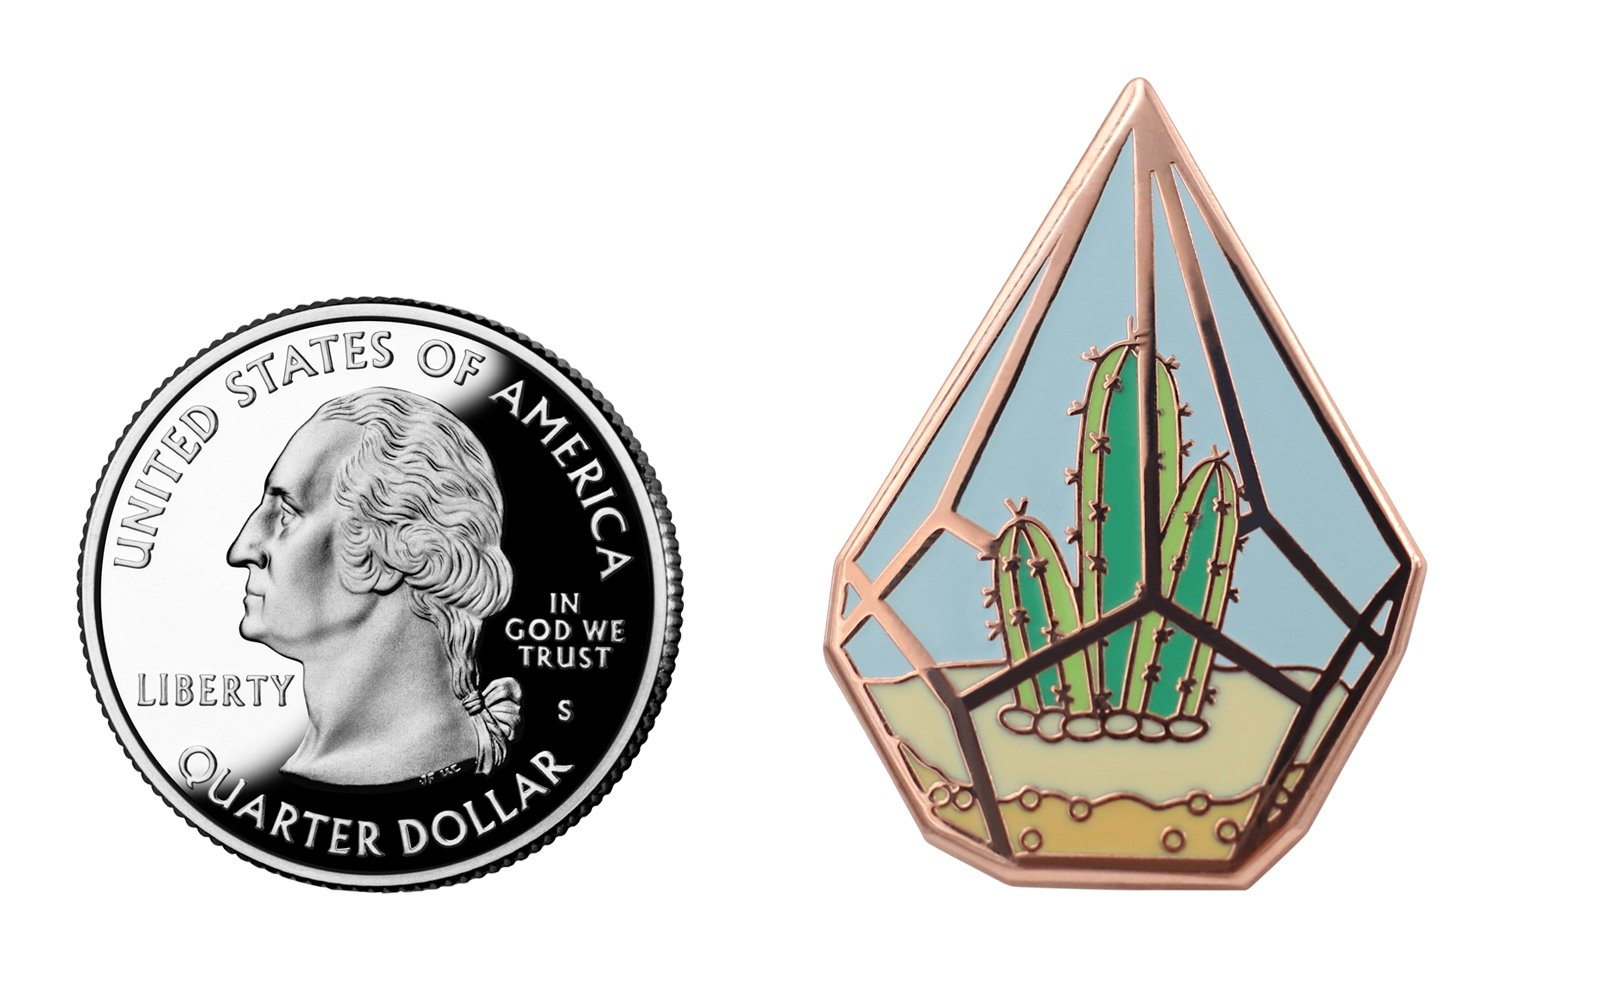 Real Sic Cactus Enamel Pin by Cute Cactus in Geometric Terrarium Lapel Pin - Premium Unisex Collection by Real Sic (Image #4)